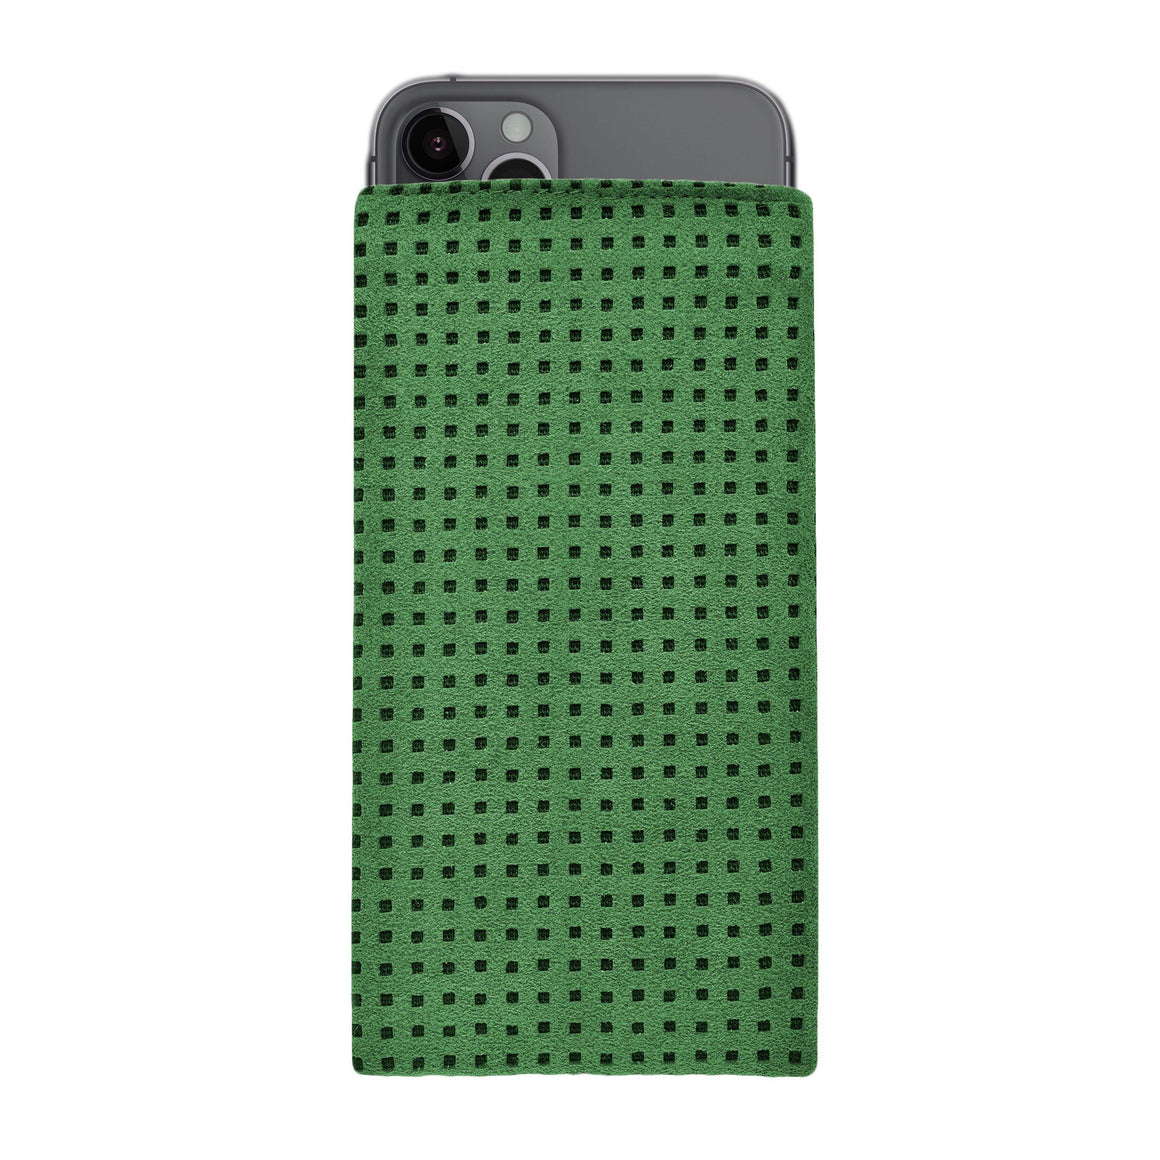 iPhone Alcantara Slip-Case Racing Green - Wrappers UK